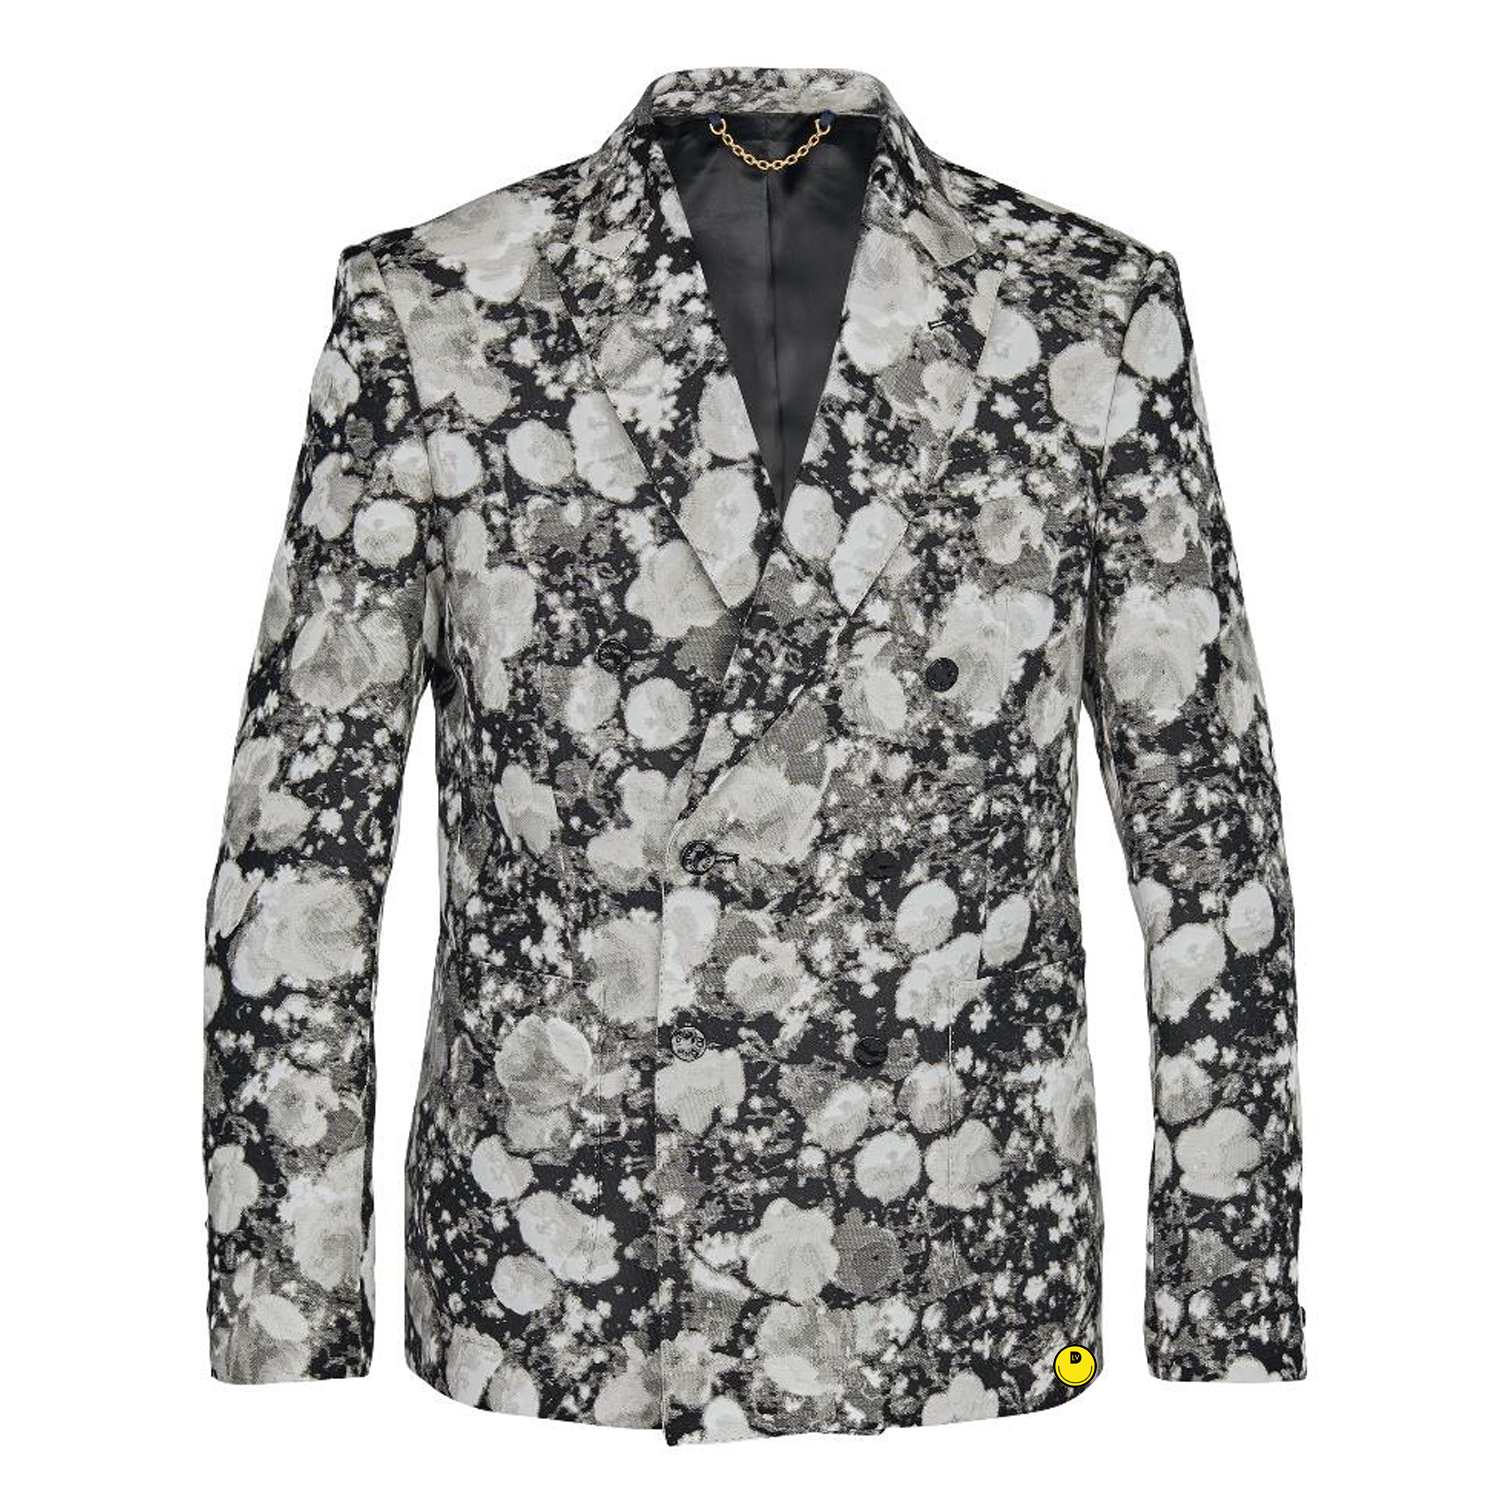 DOUBLE BREASTED JACKET - €2900 $-GRIS